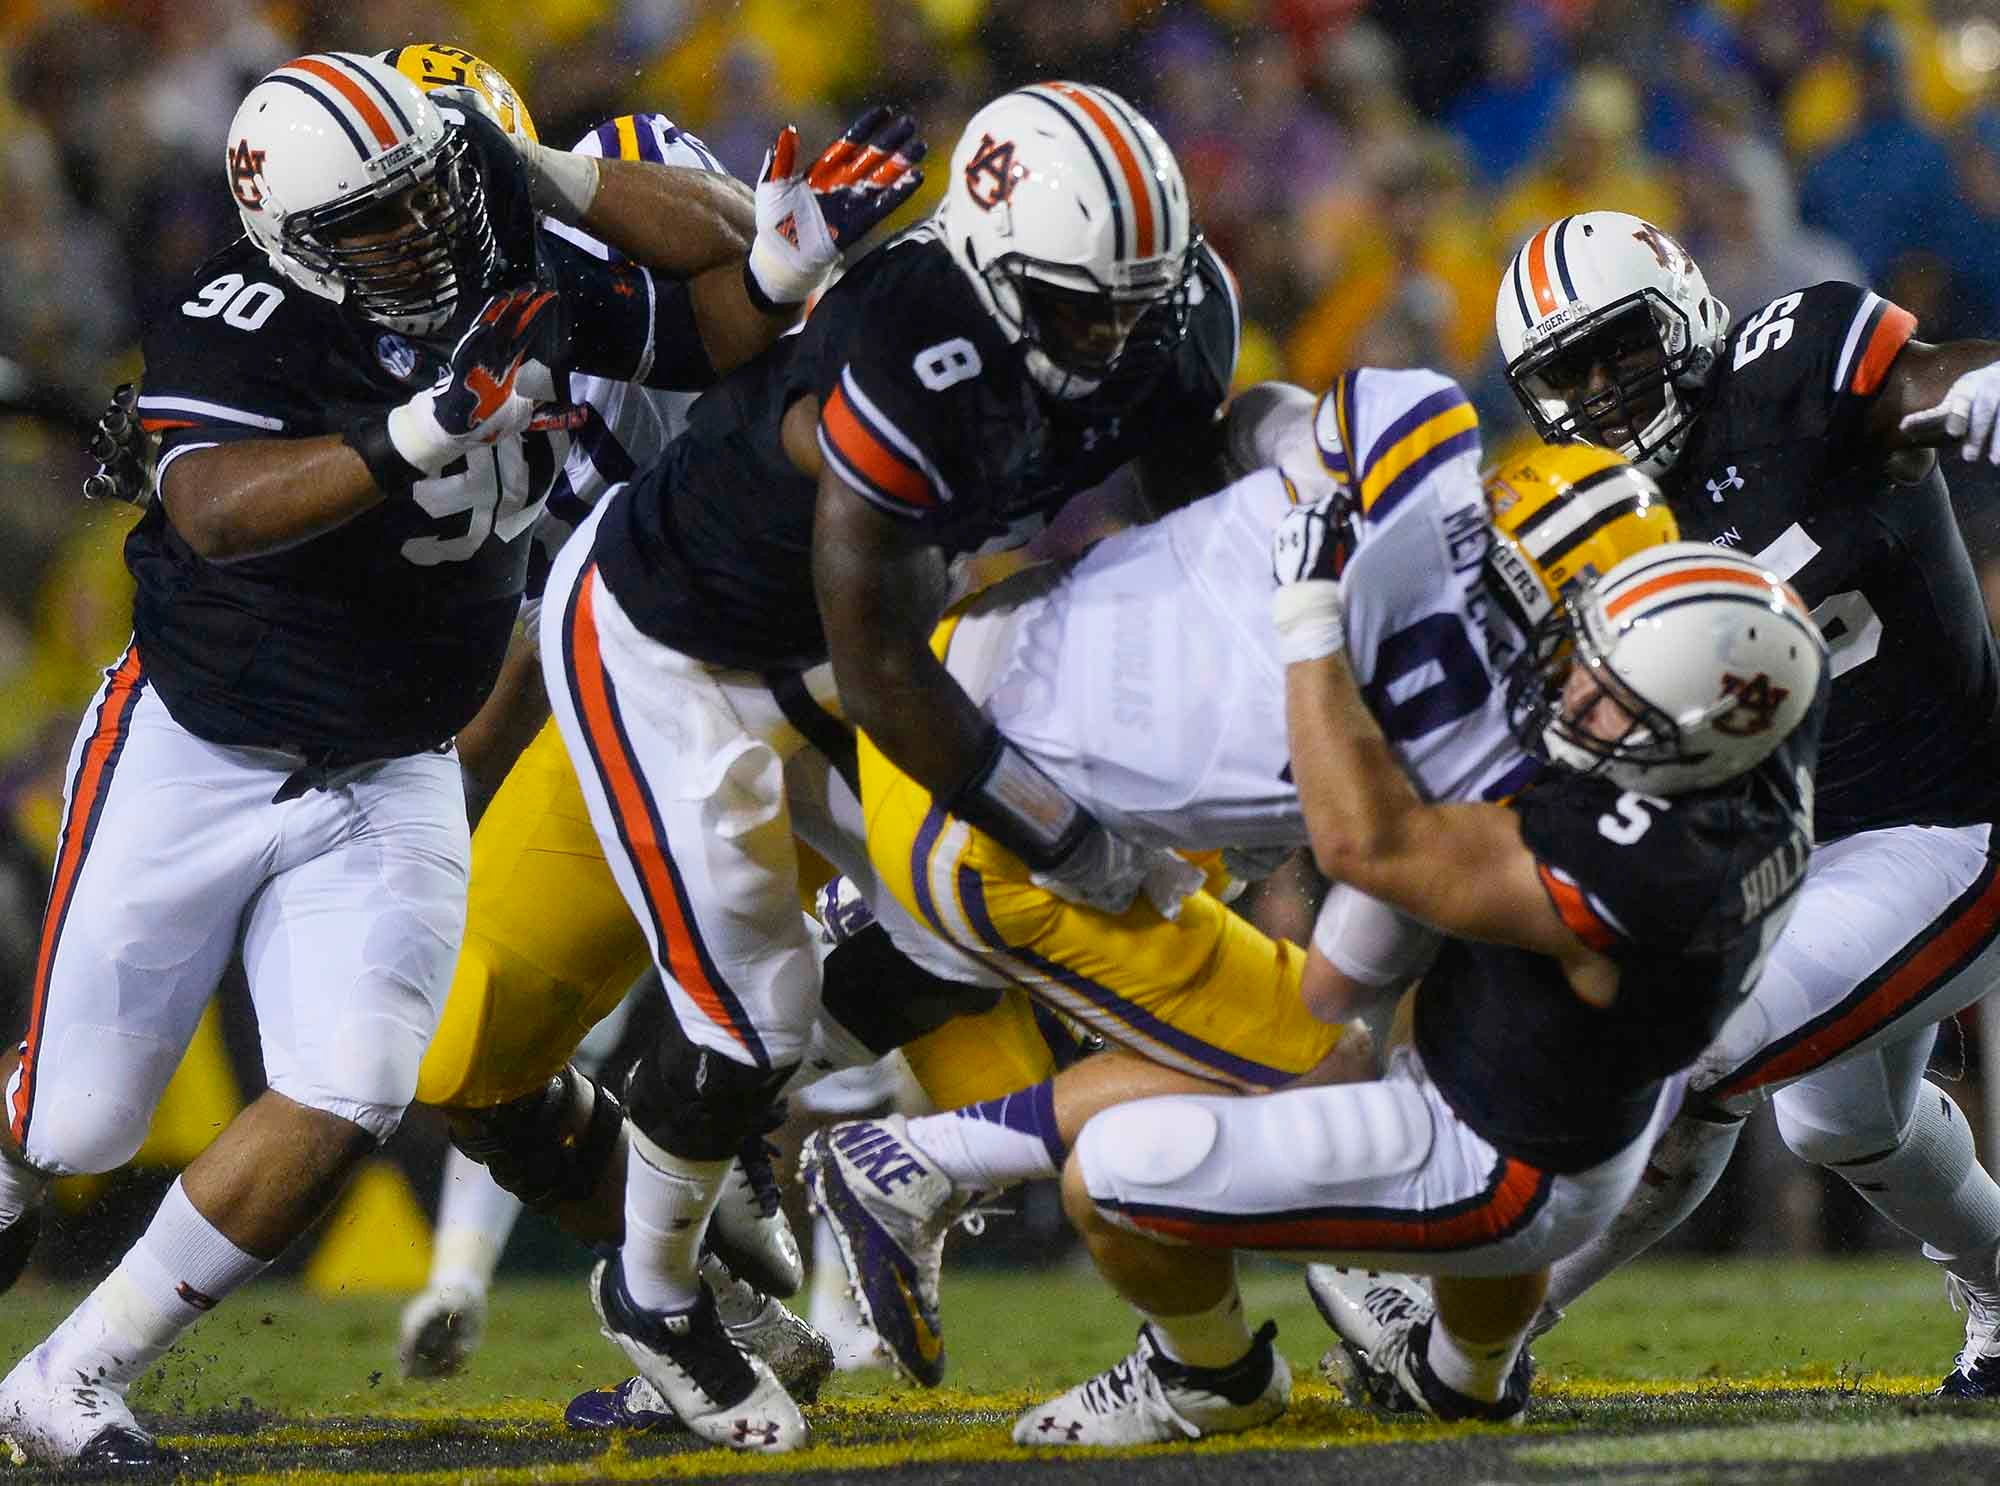 LSU quarterback Zach Mettenberger gets sacked by the Auburn defense. Mettenberger has gotten off to a go